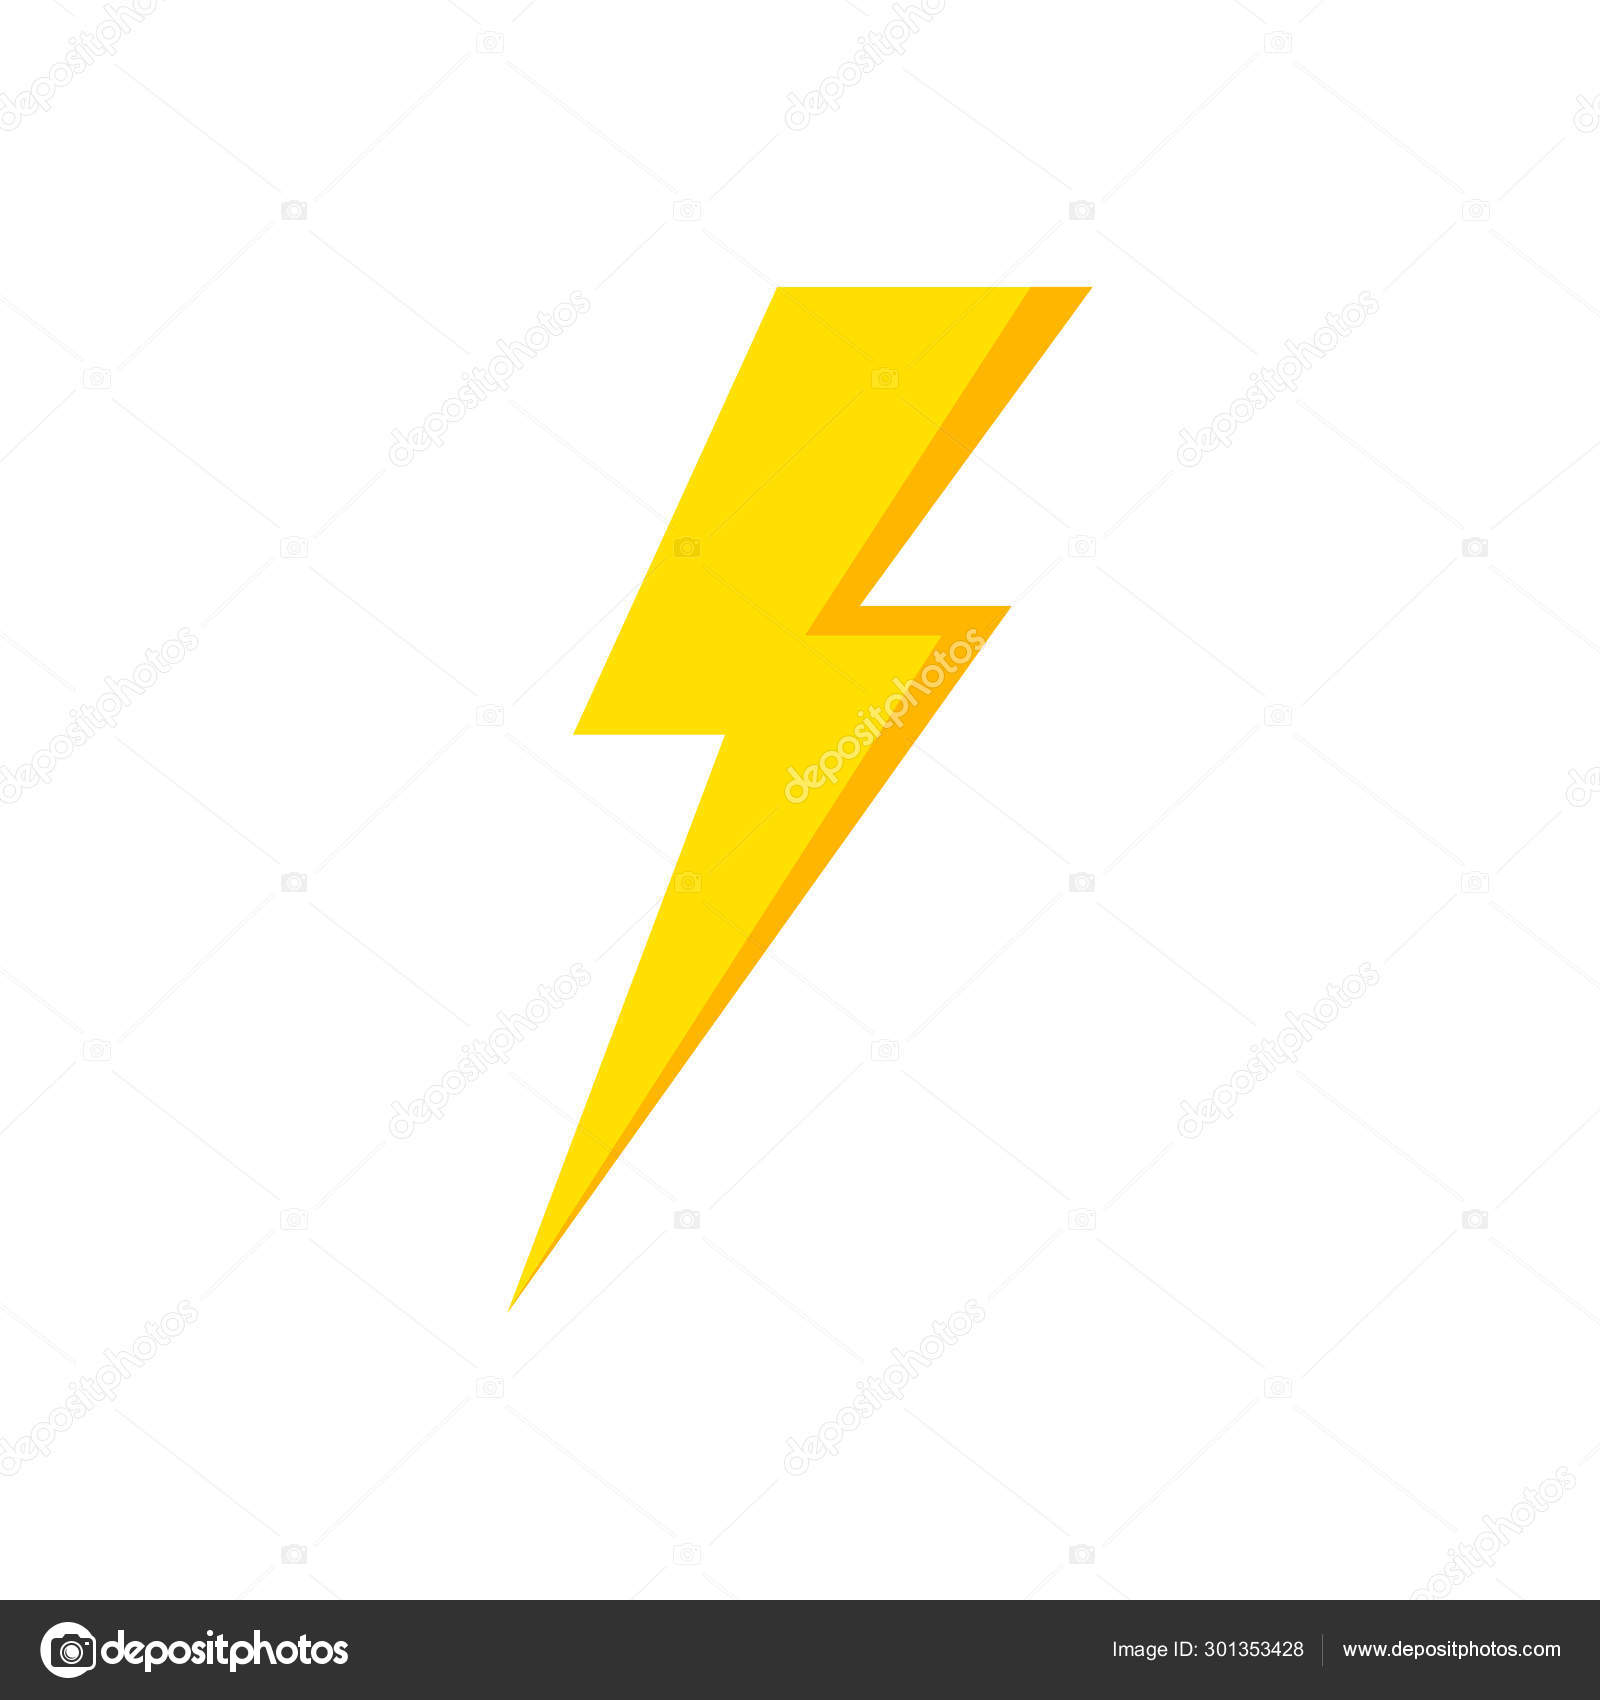 Lightning Icon Thunder And Bolt Flash Icon Lightning Bolt Black And Yellow Silhouette Vector Illustration Stock Vector C Sergii19 I Ua 301353428